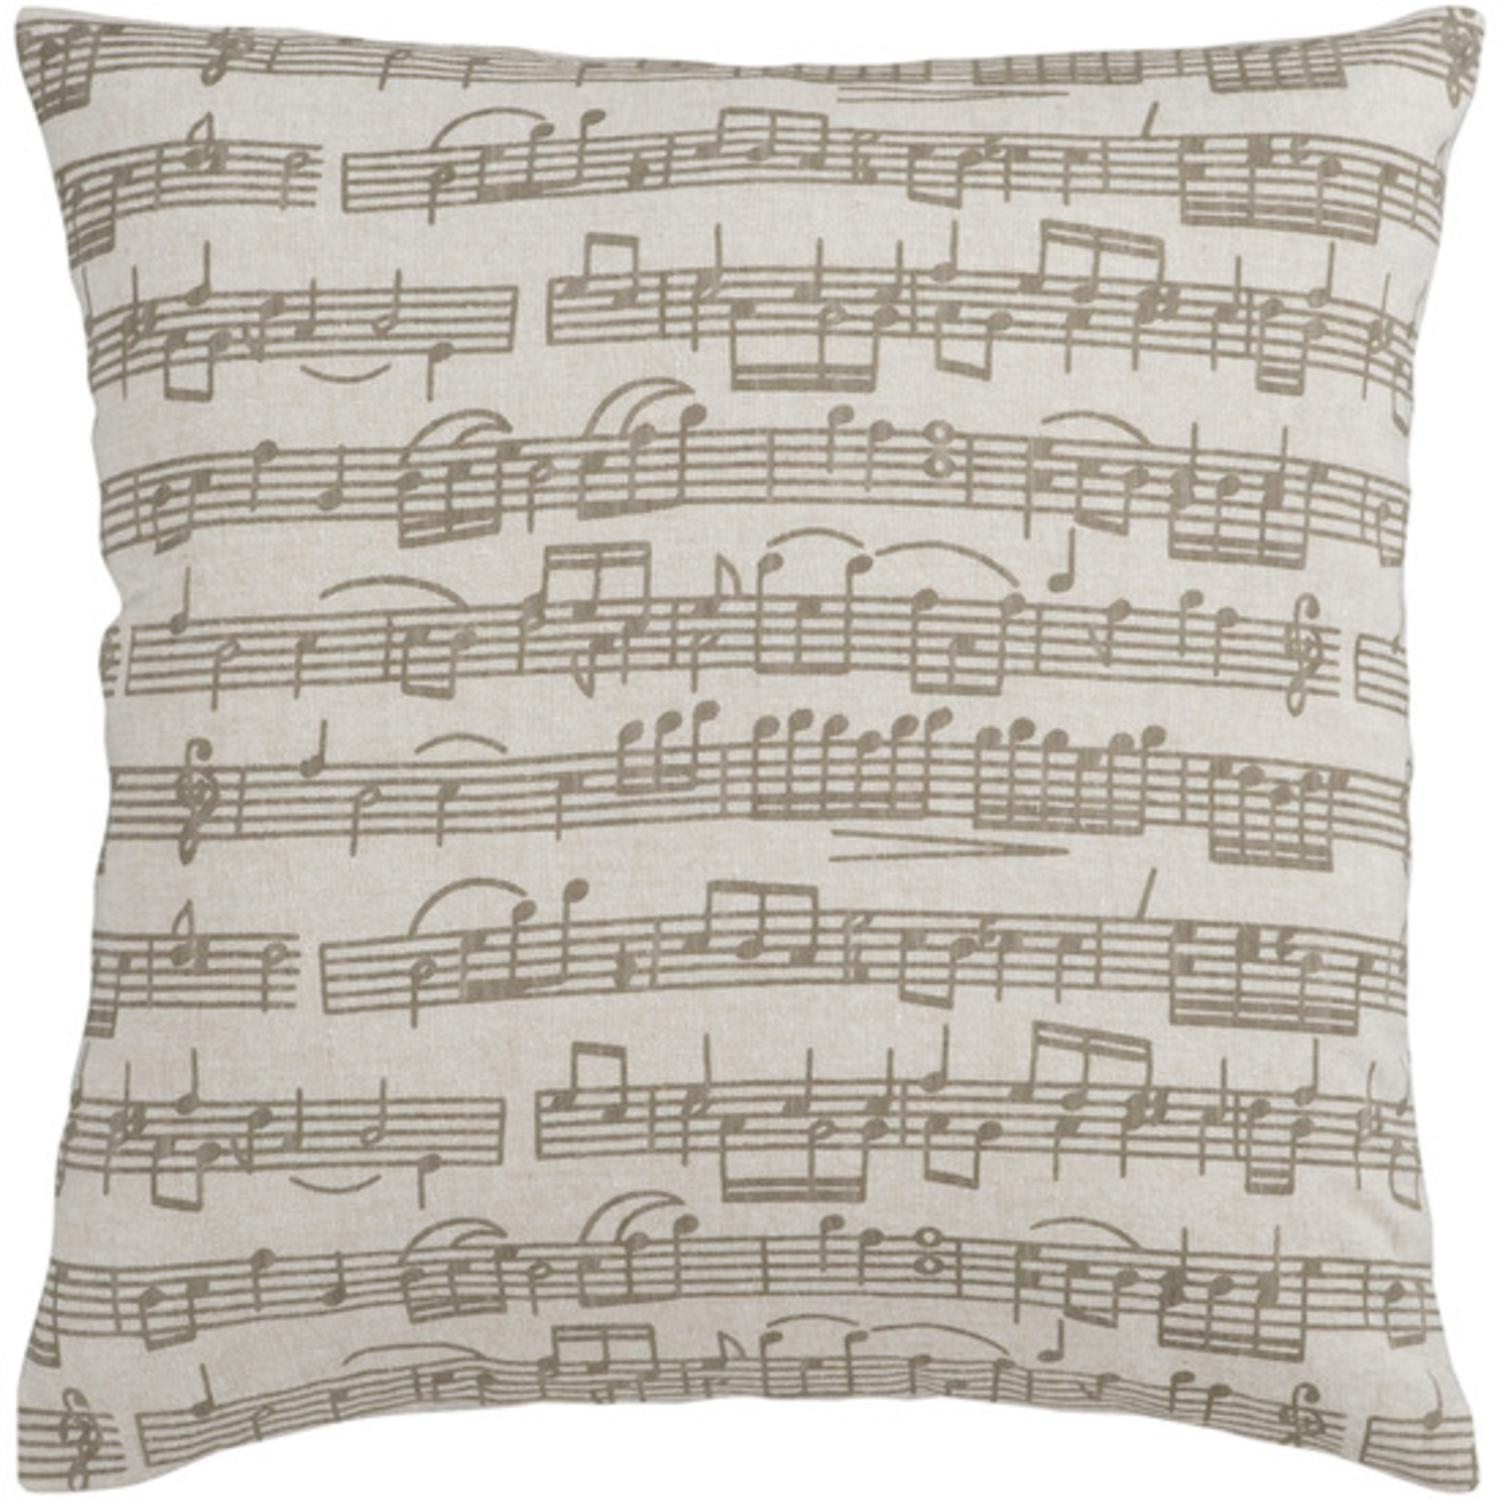 "18"" Musical Composition Beige and Brown Decorative Down Throw Pillow"